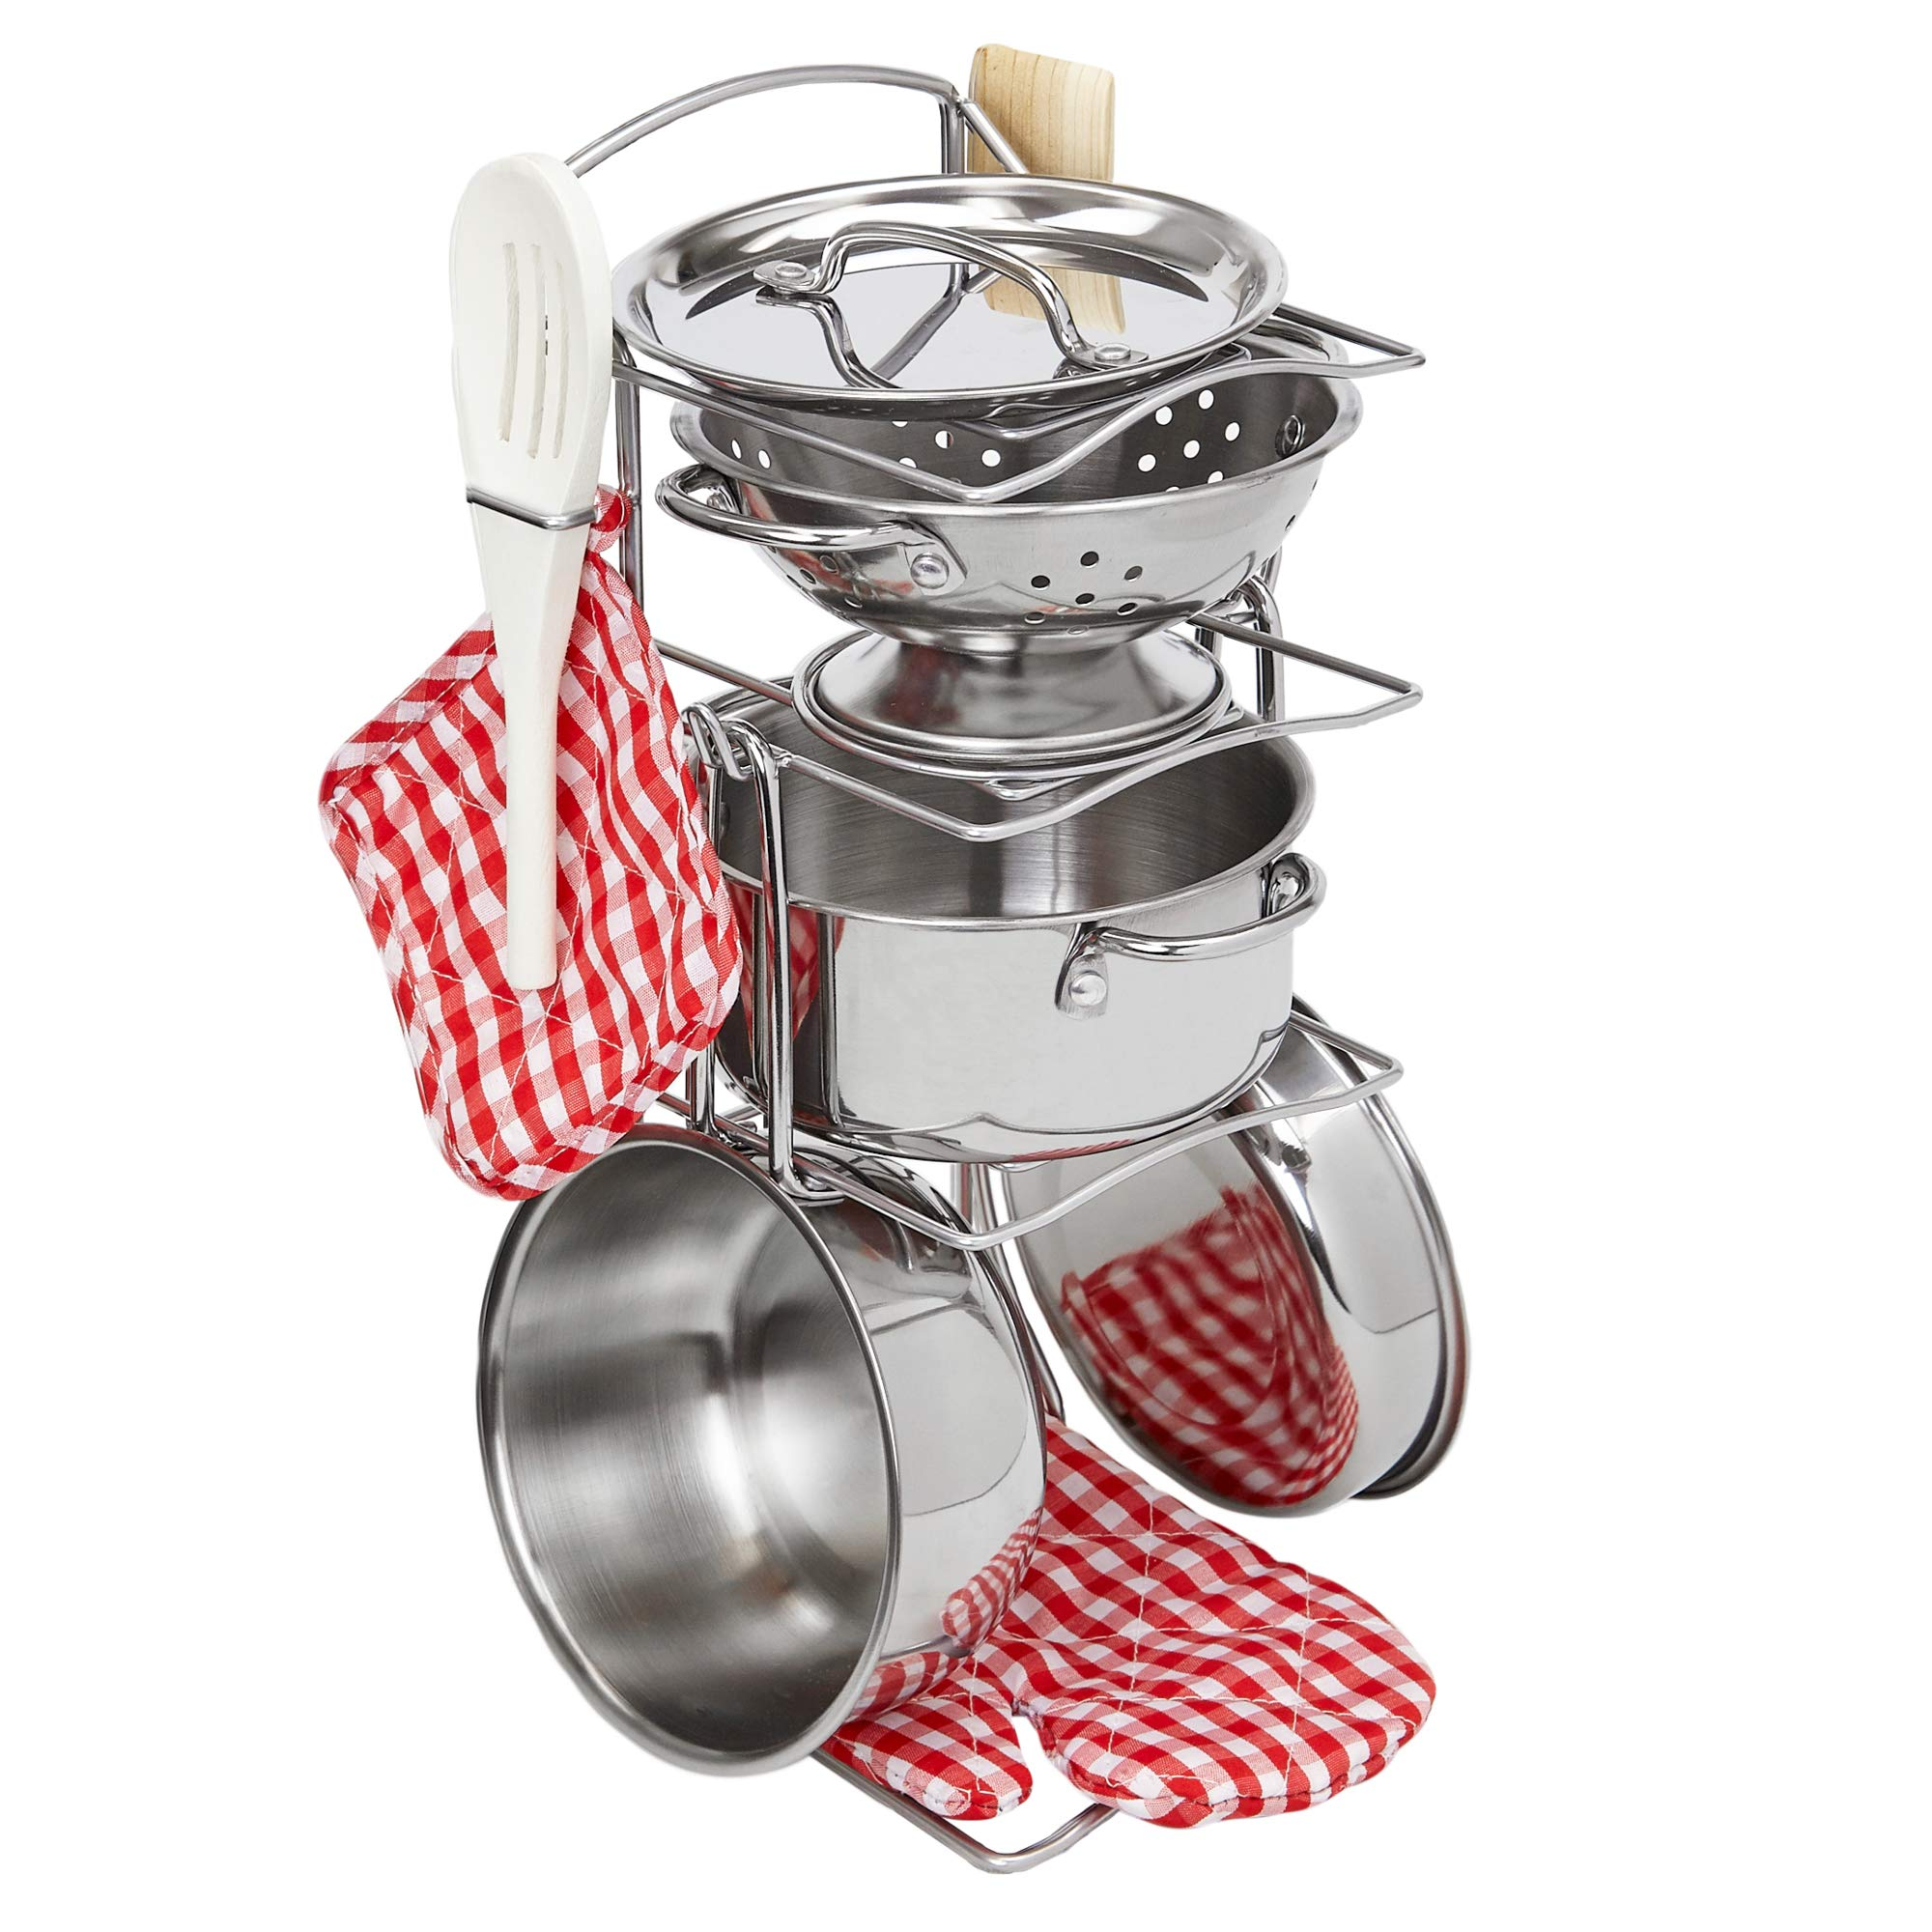 Giantville Toy Kitchen Play Set, 10 Piece Bundle - Stainless Steel Pots, Pans and Skillets, Wooden Spoons and Utensils, Pot Holders and Storage Caddy Rack by Giantville